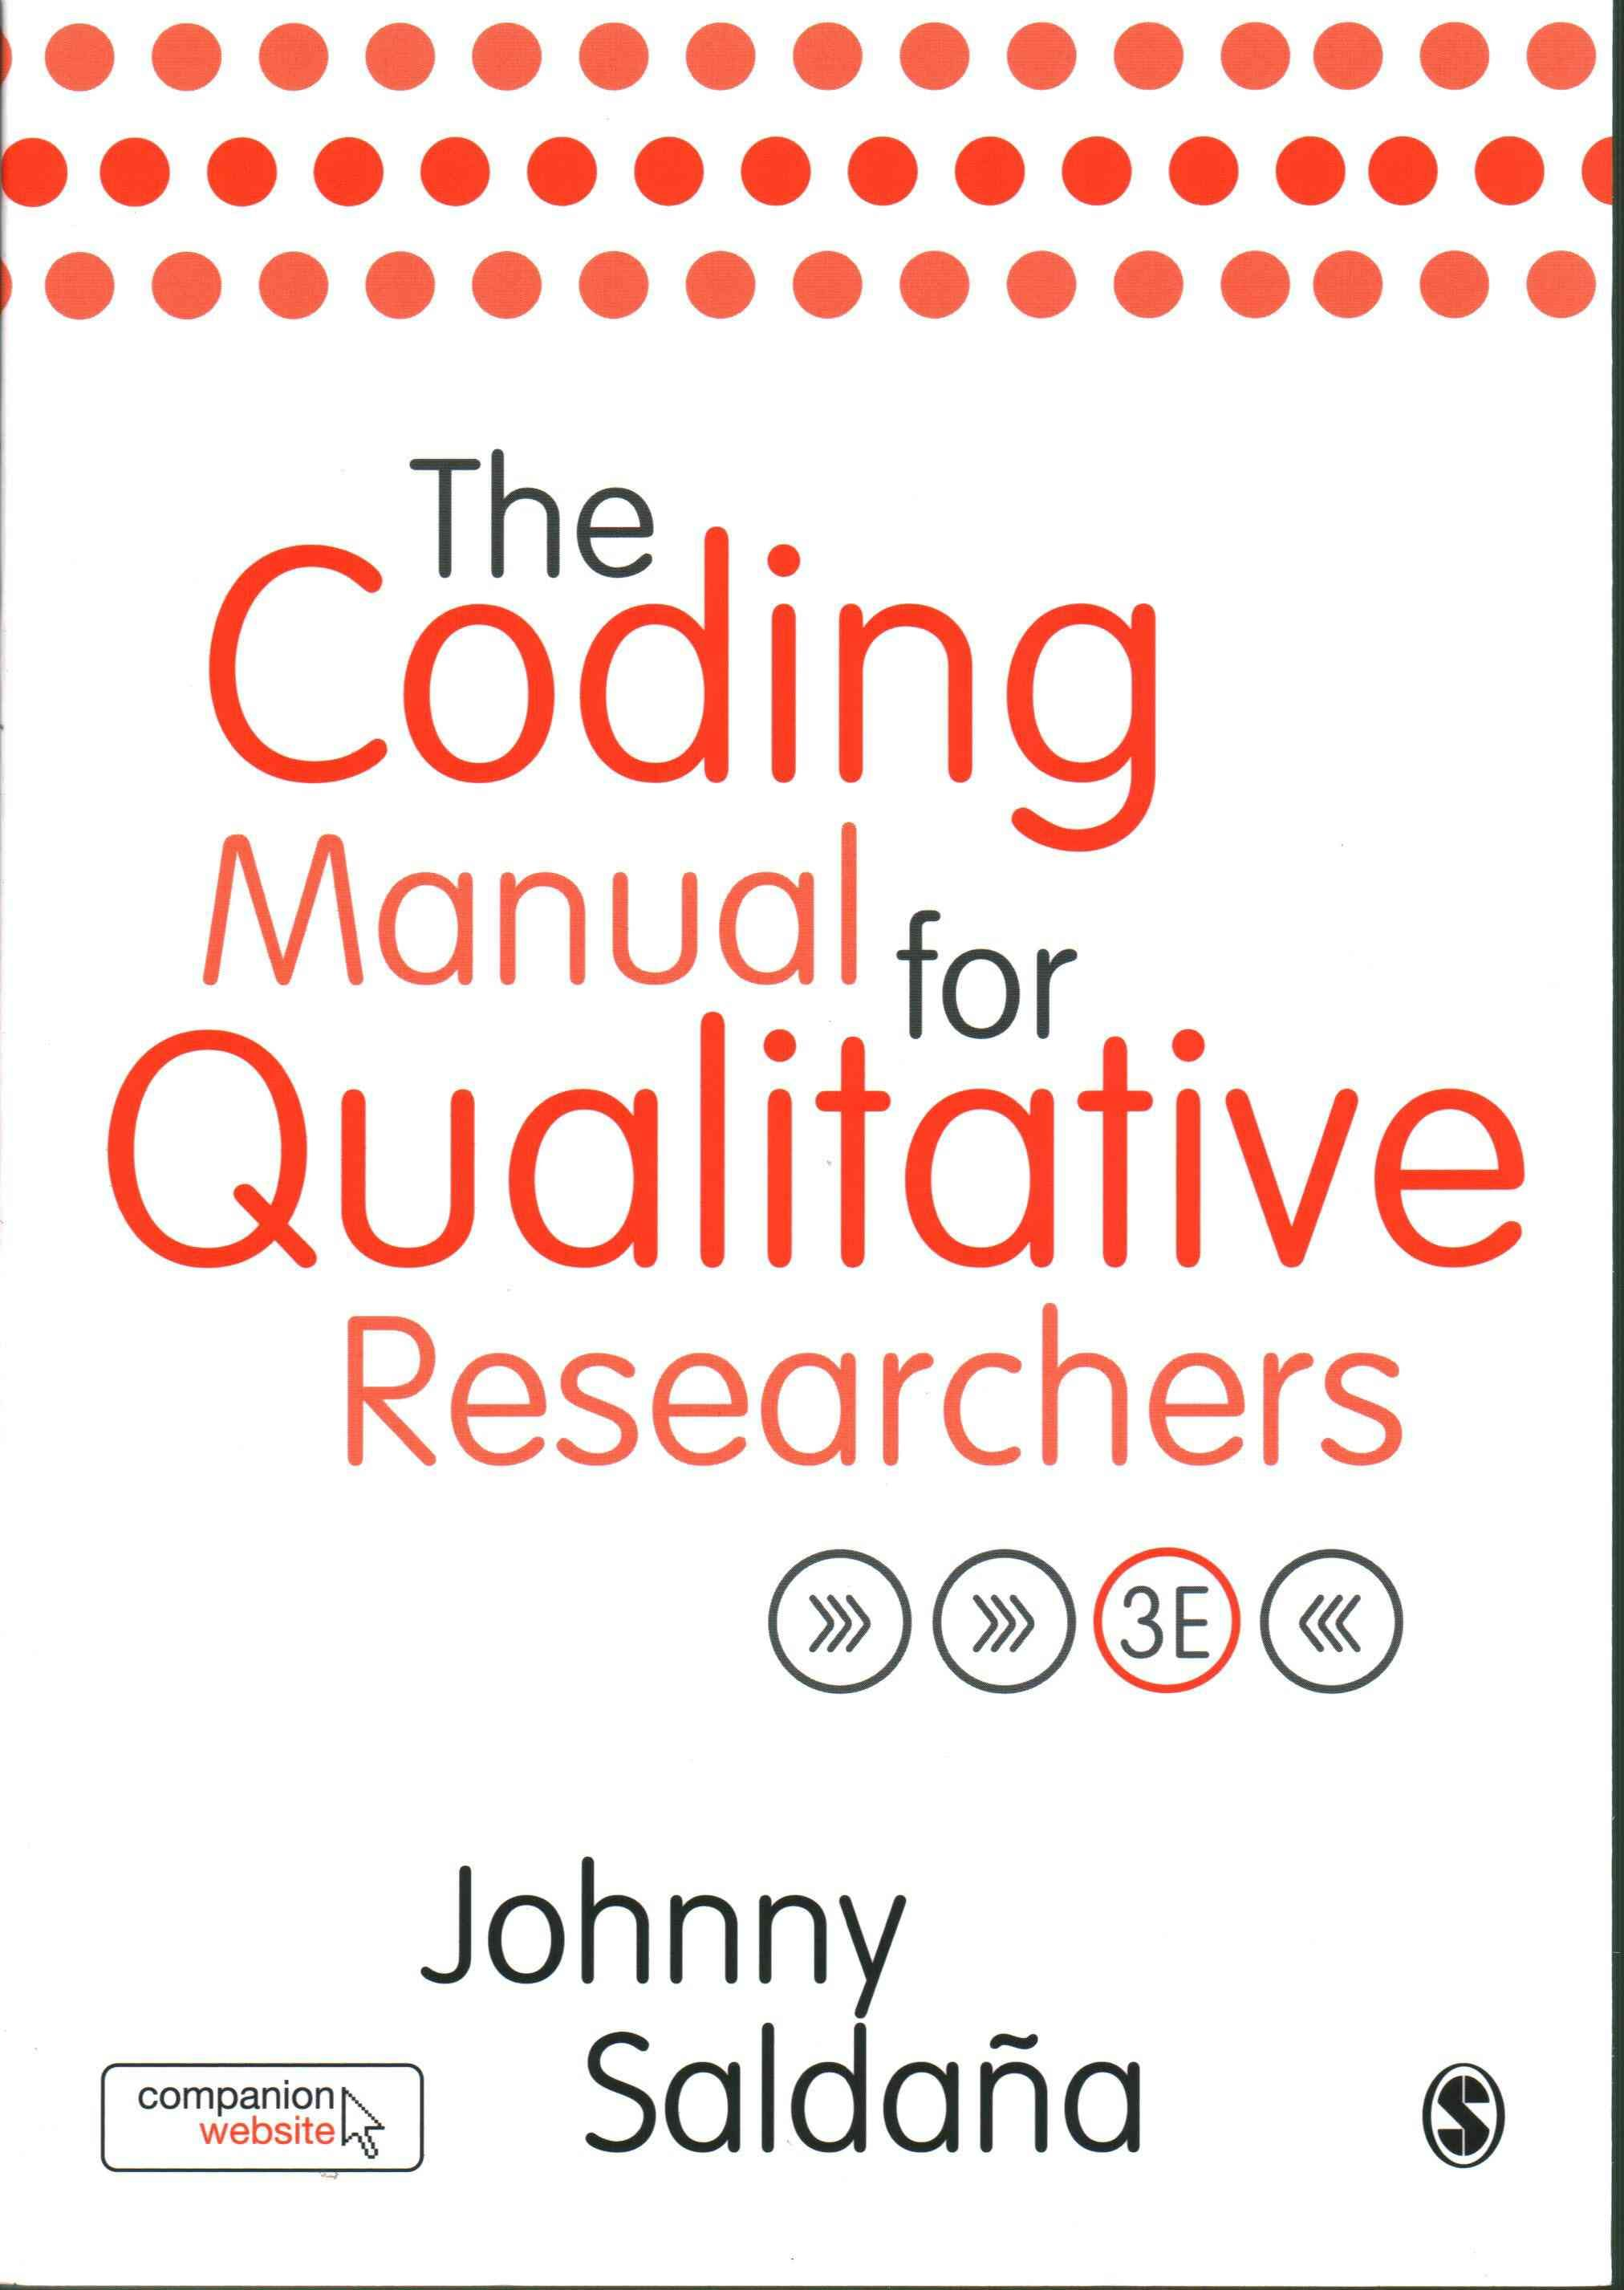 The Coding Manual for Qualitative Researchers, Green